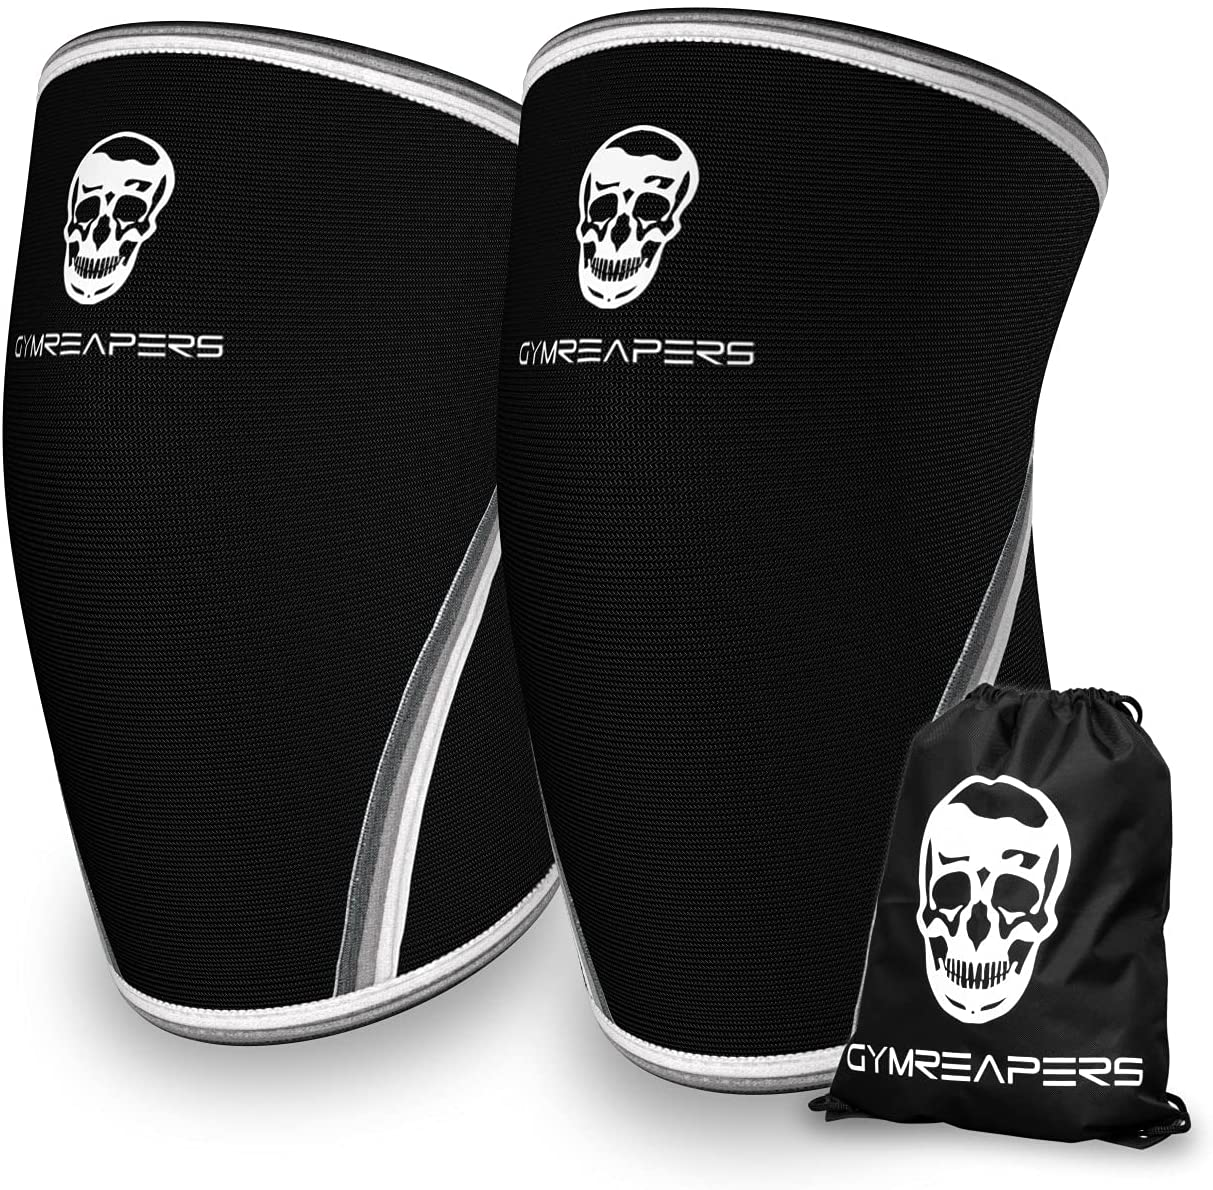 Bombing free shipping Knee Sleeves 1 Pair Gym Brace Compression Quality inspection - Bag Sleeve